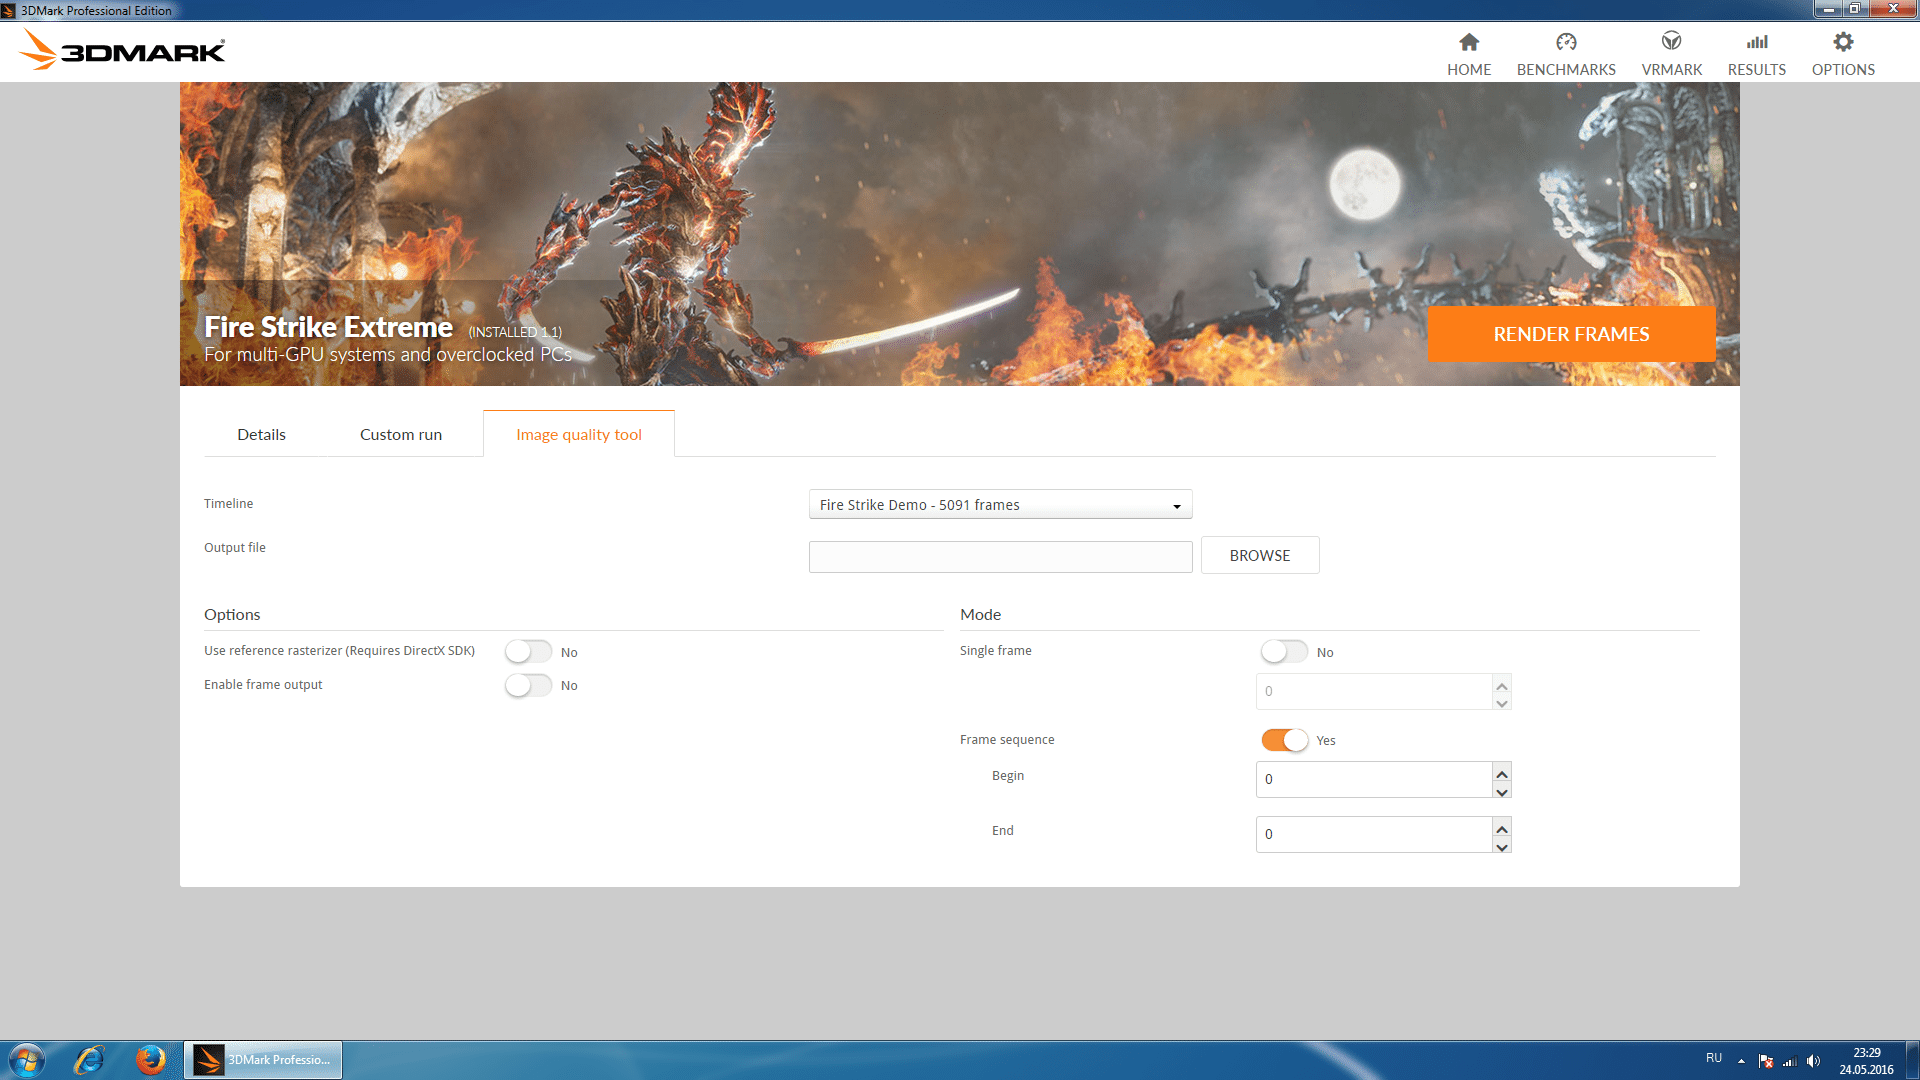 3dmark test options